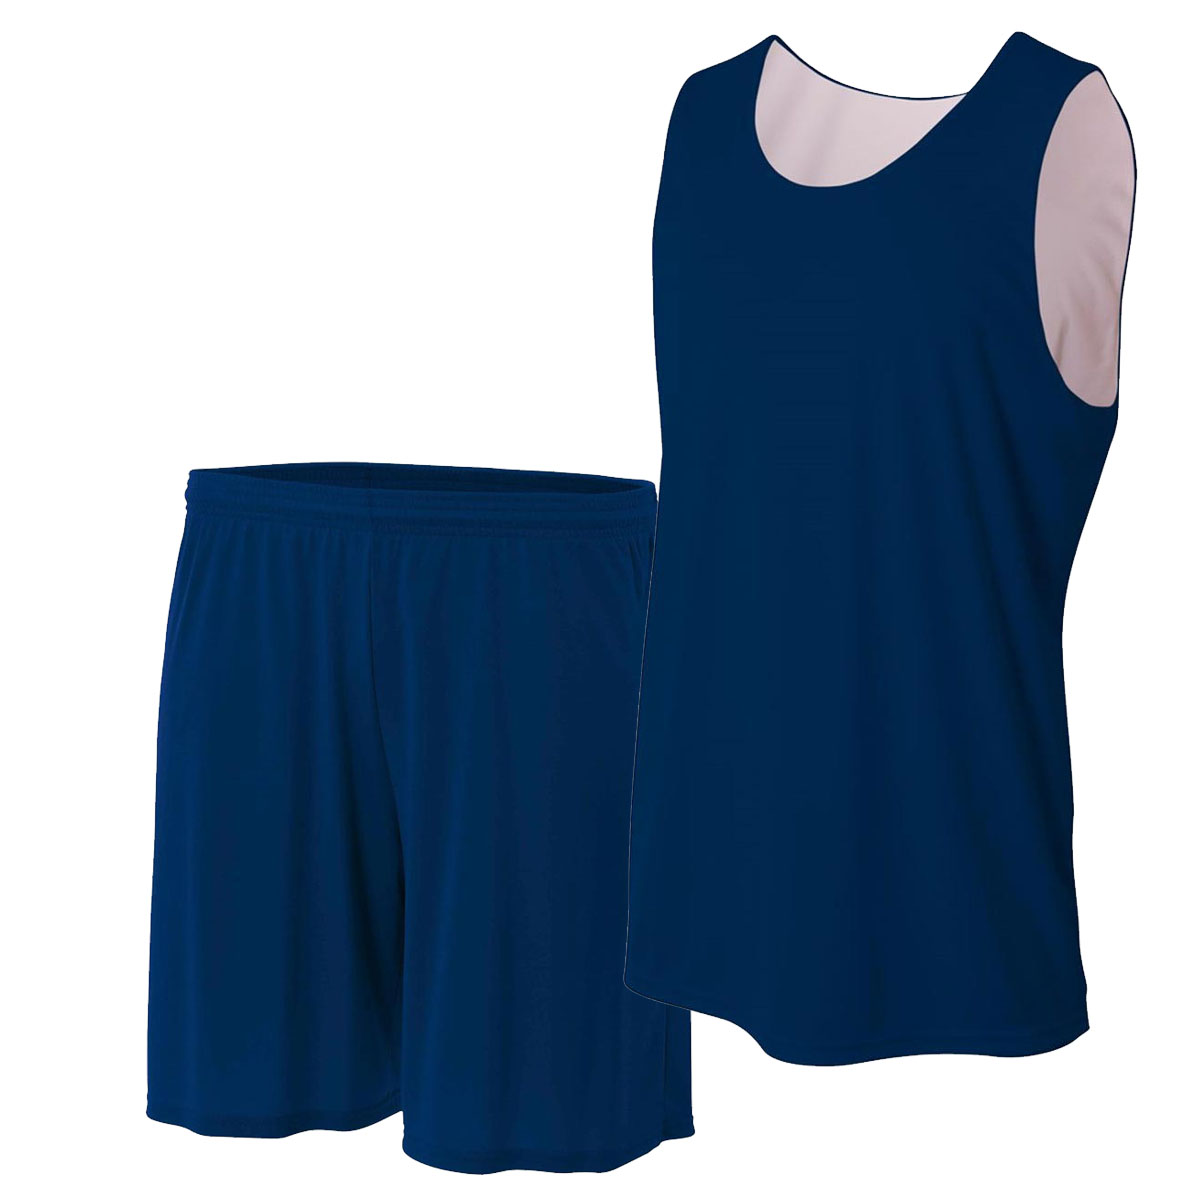 Reversible Basketball Uniforms Manufacturers in Bikaner